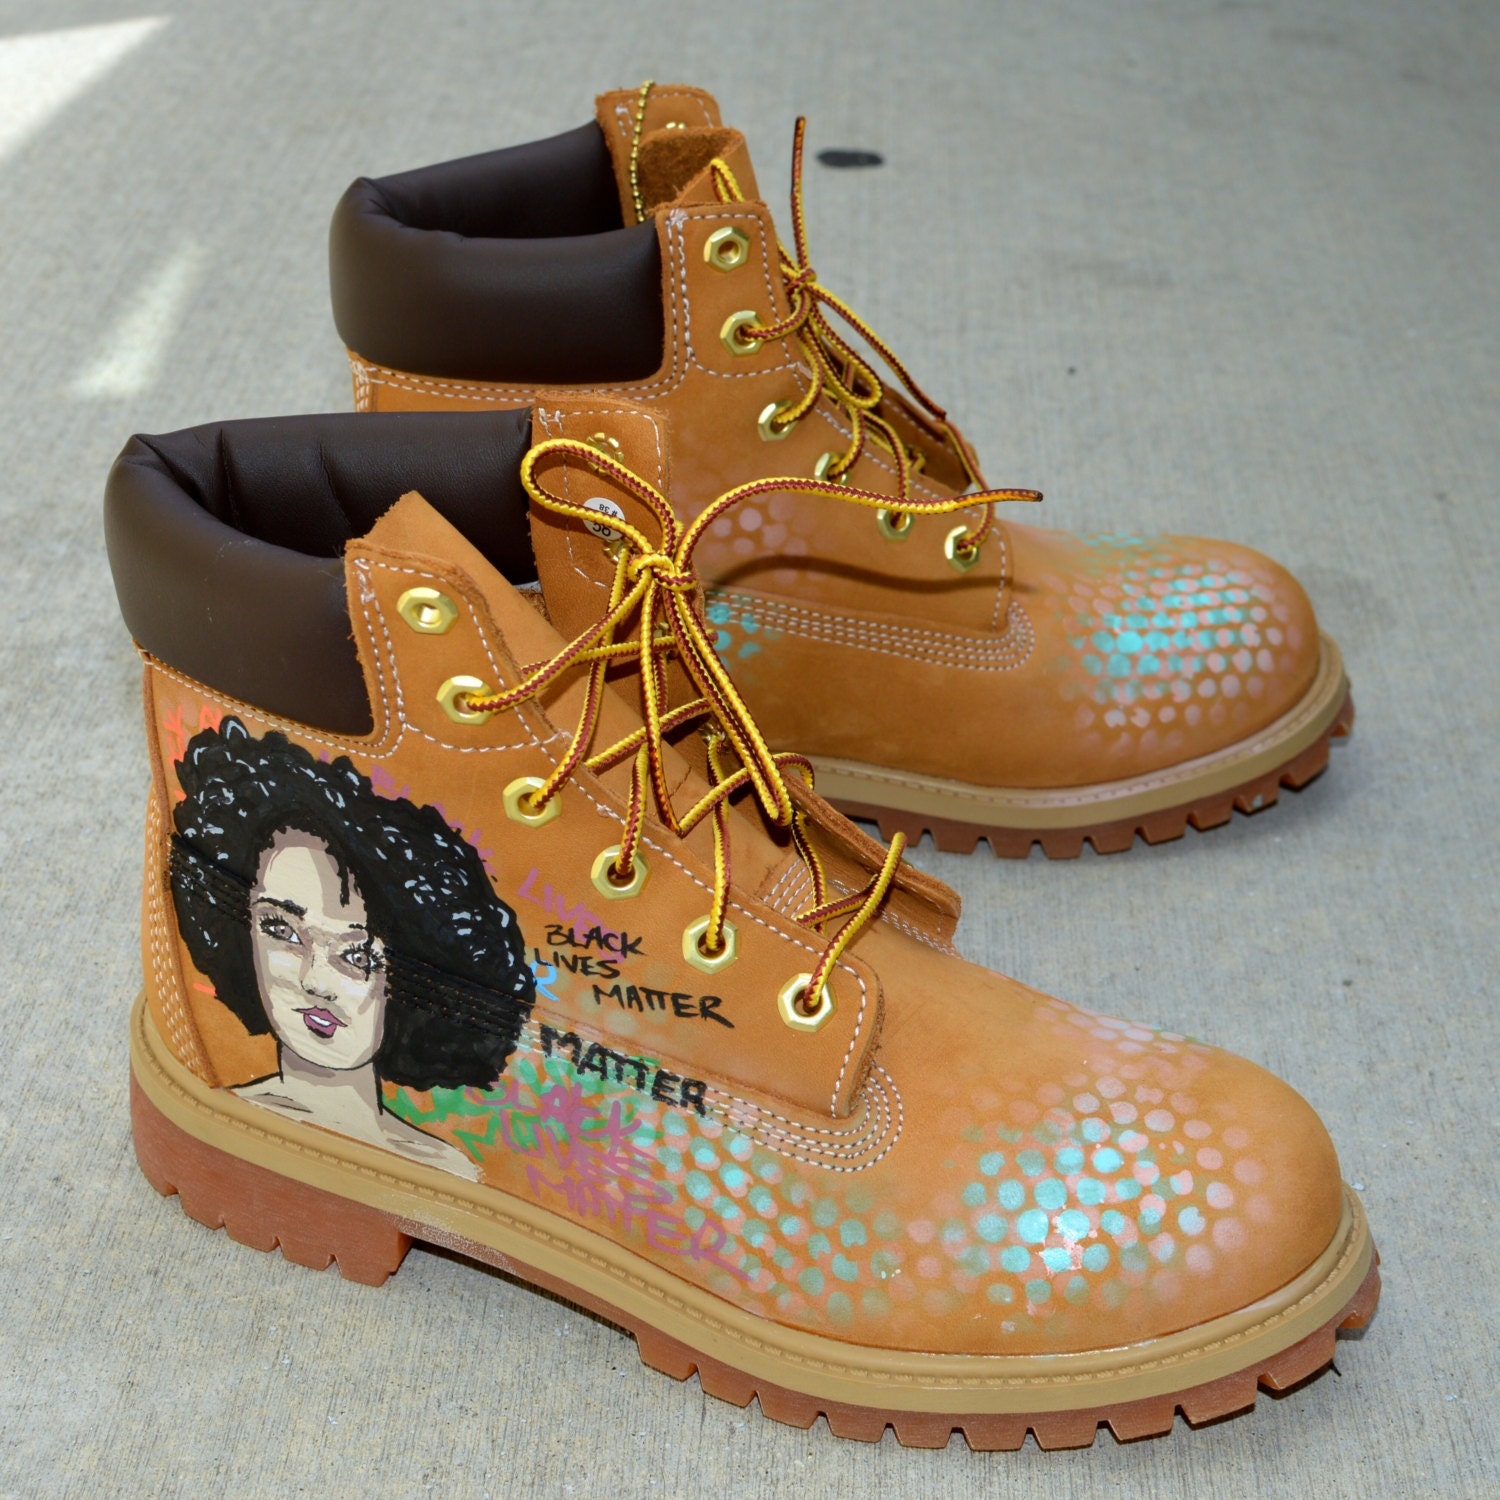 Black Lives Matters Custom Hand Painted Timberland Boots